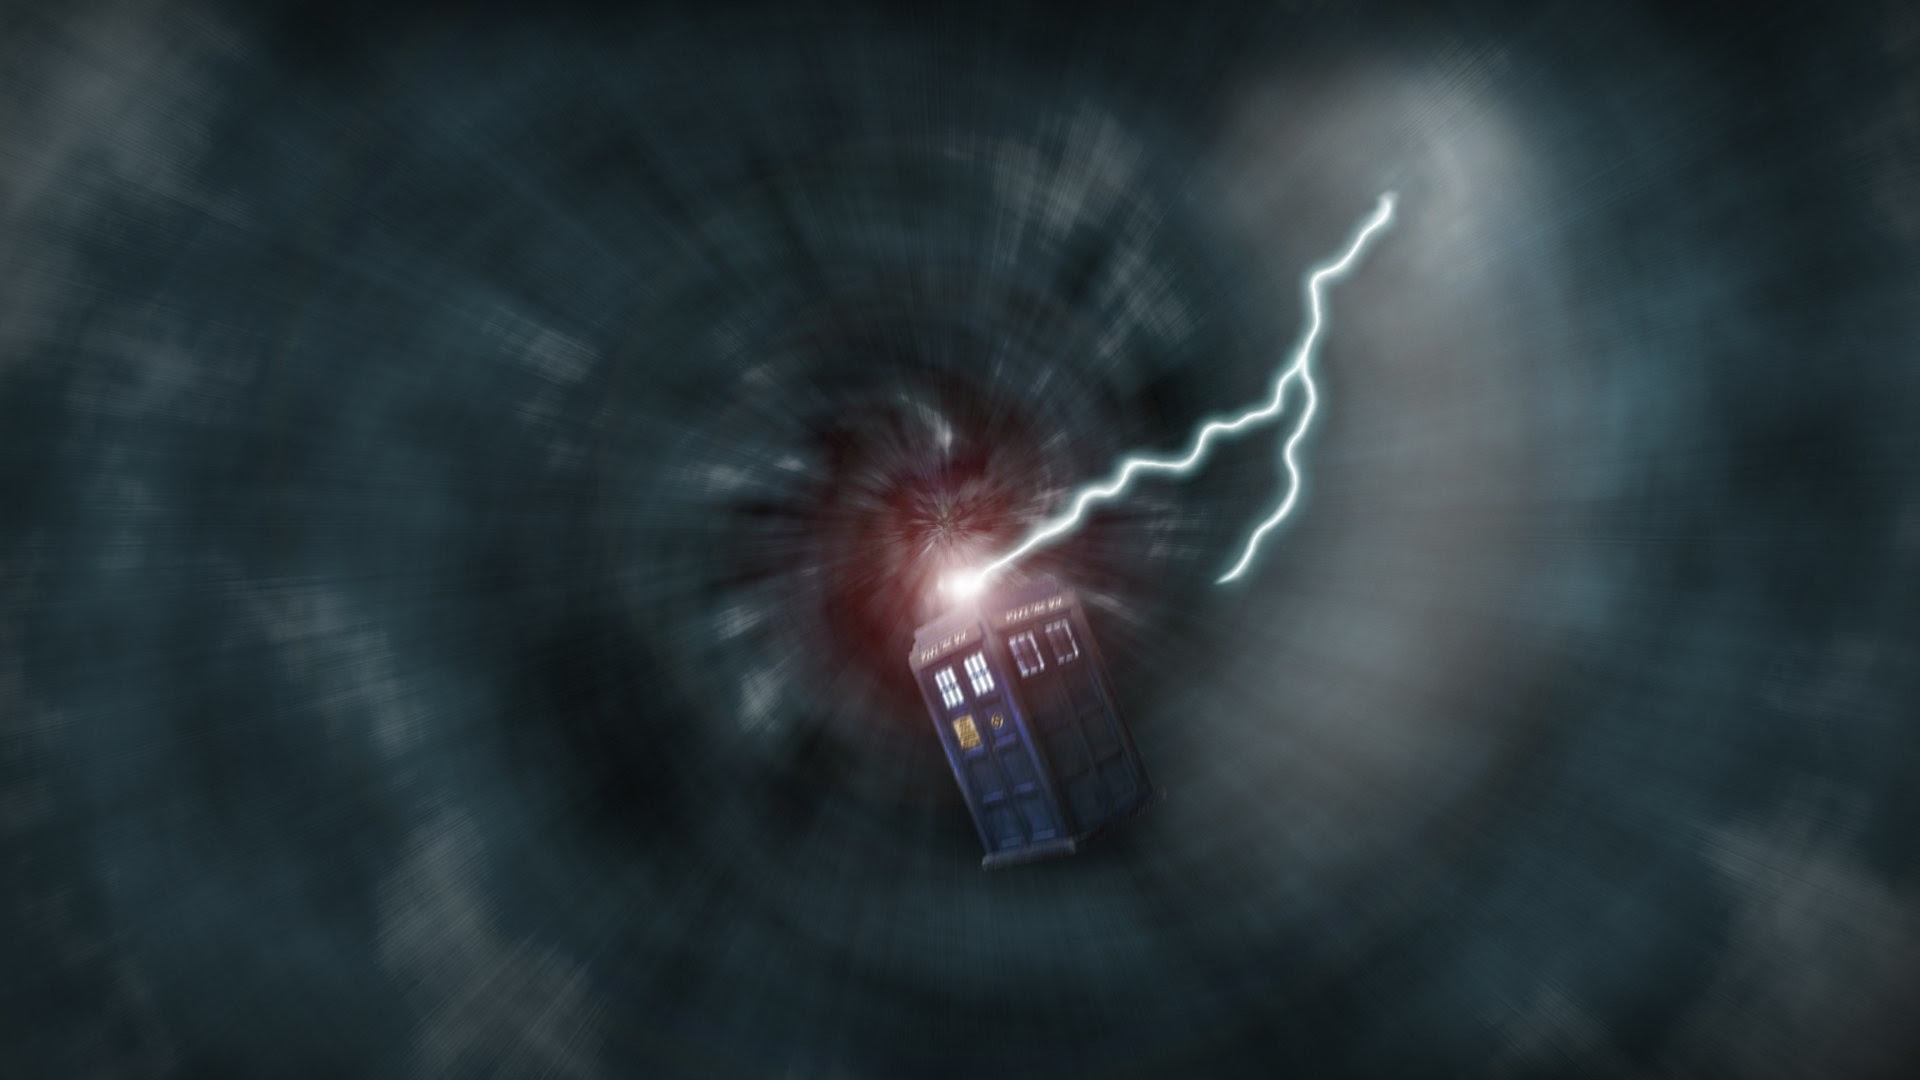 Doctor Who Time Vortex Wallpaper 72 Images